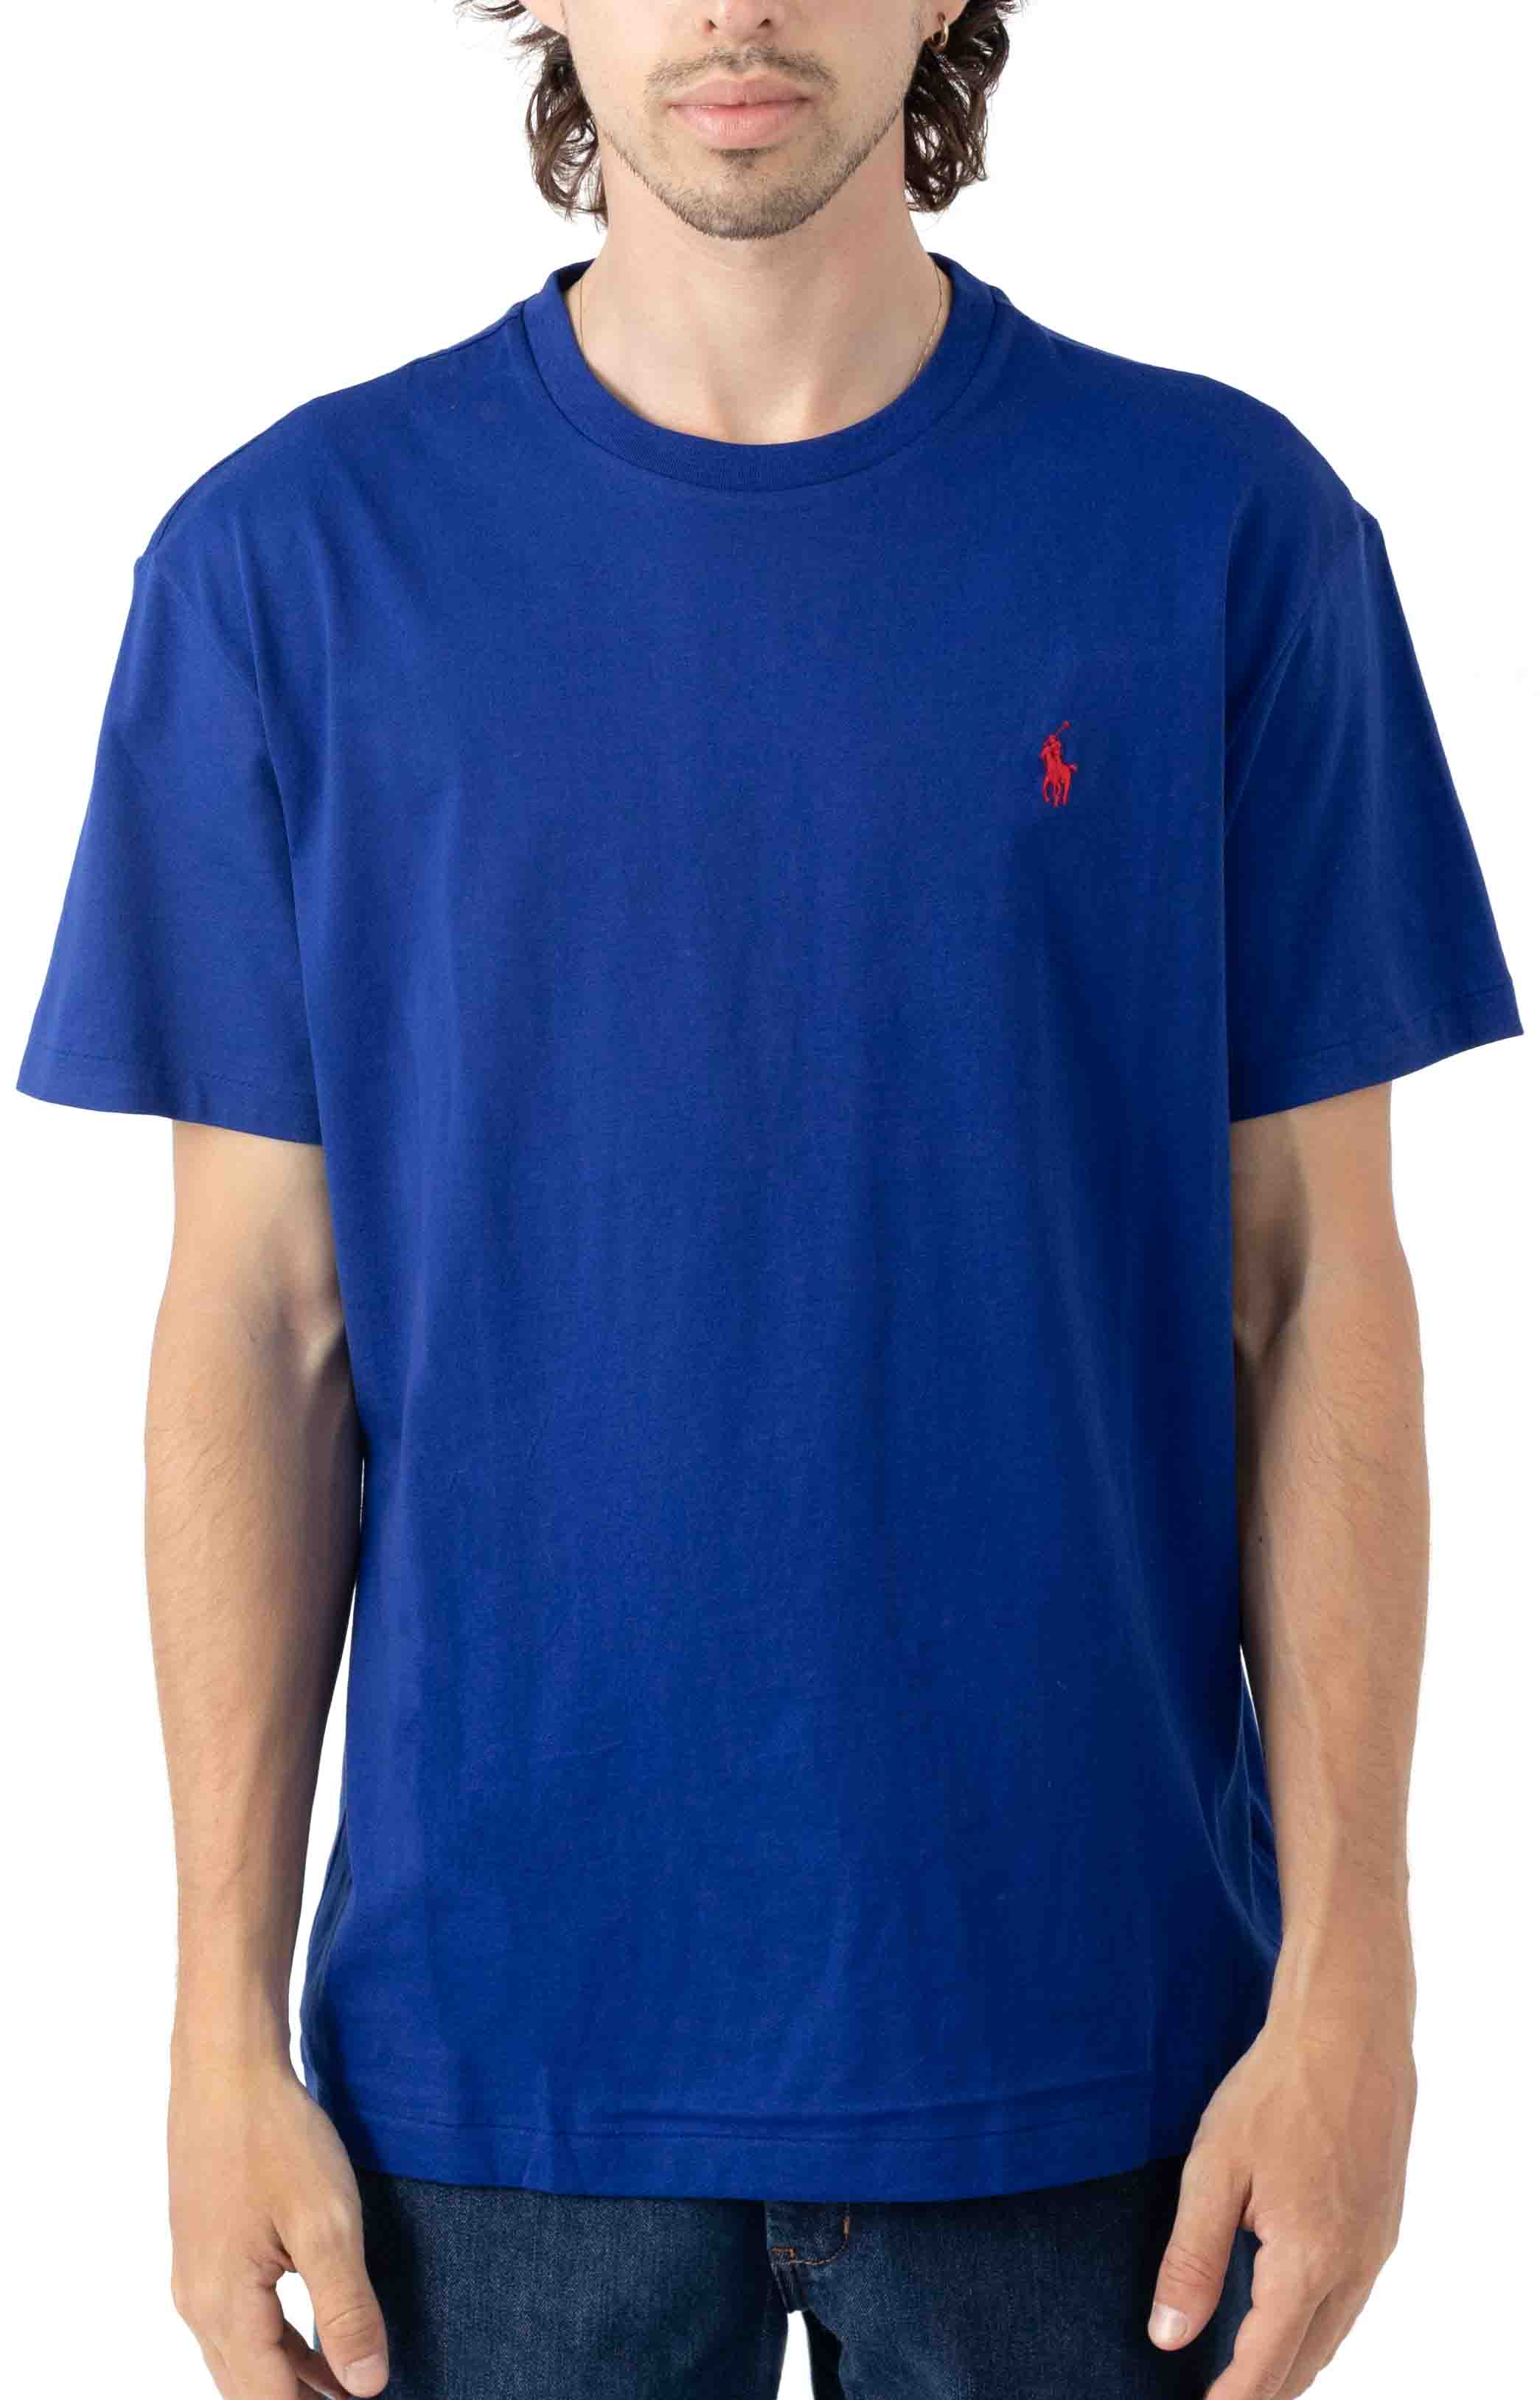 Classic Solid Crewneck T-Shirt - Heritage Royal/Red